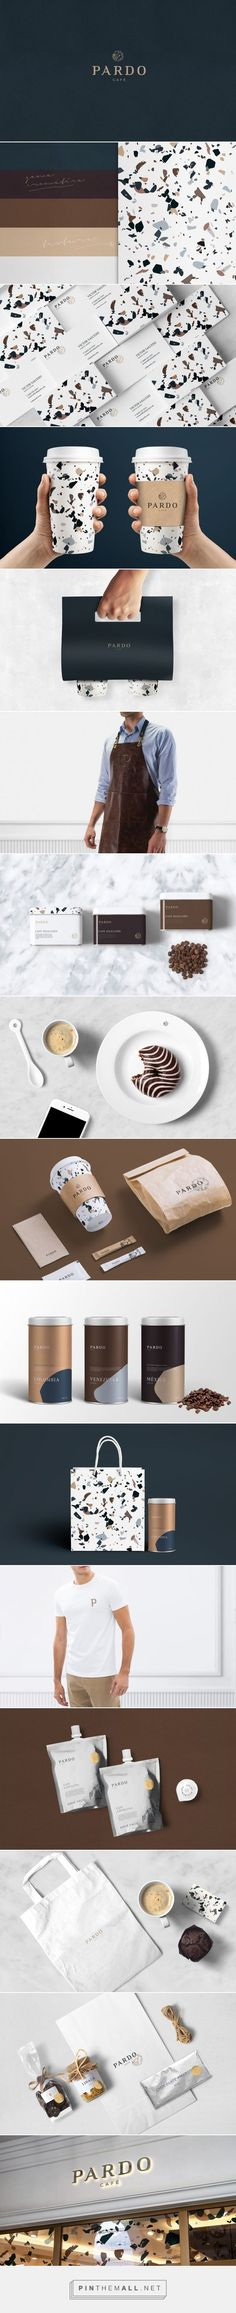 Pardo Cafe Branding and Packaging Fivestar Branding Agency – Design and Branding Agency & Curated Inspiration Gallery Brand Identity Design, Corporate Design, Graphic Design Typography, Logo Design, Brand Design, Corporate Identity, Cafe Branding, Branding Agency, Business Branding